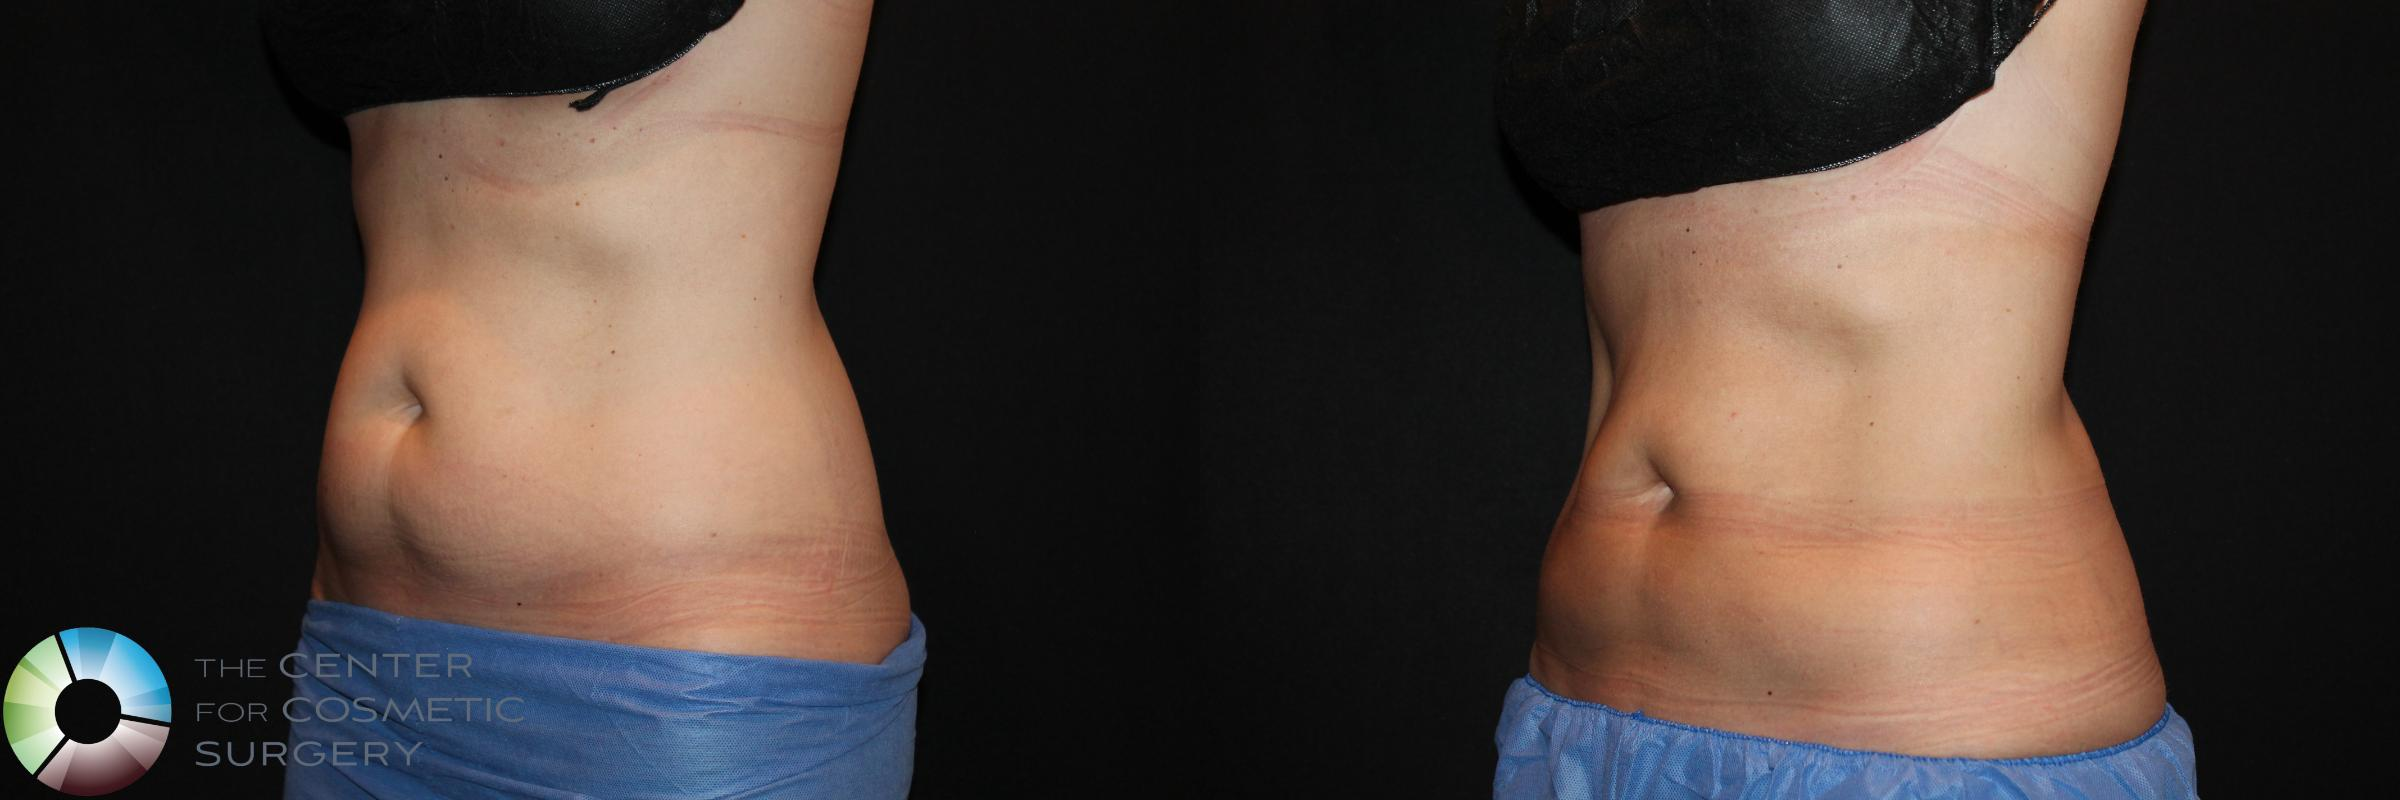 CoolSculpting Case 729 Before & After View #1 | Golden, CO | The Center for Cosmetic Surgery